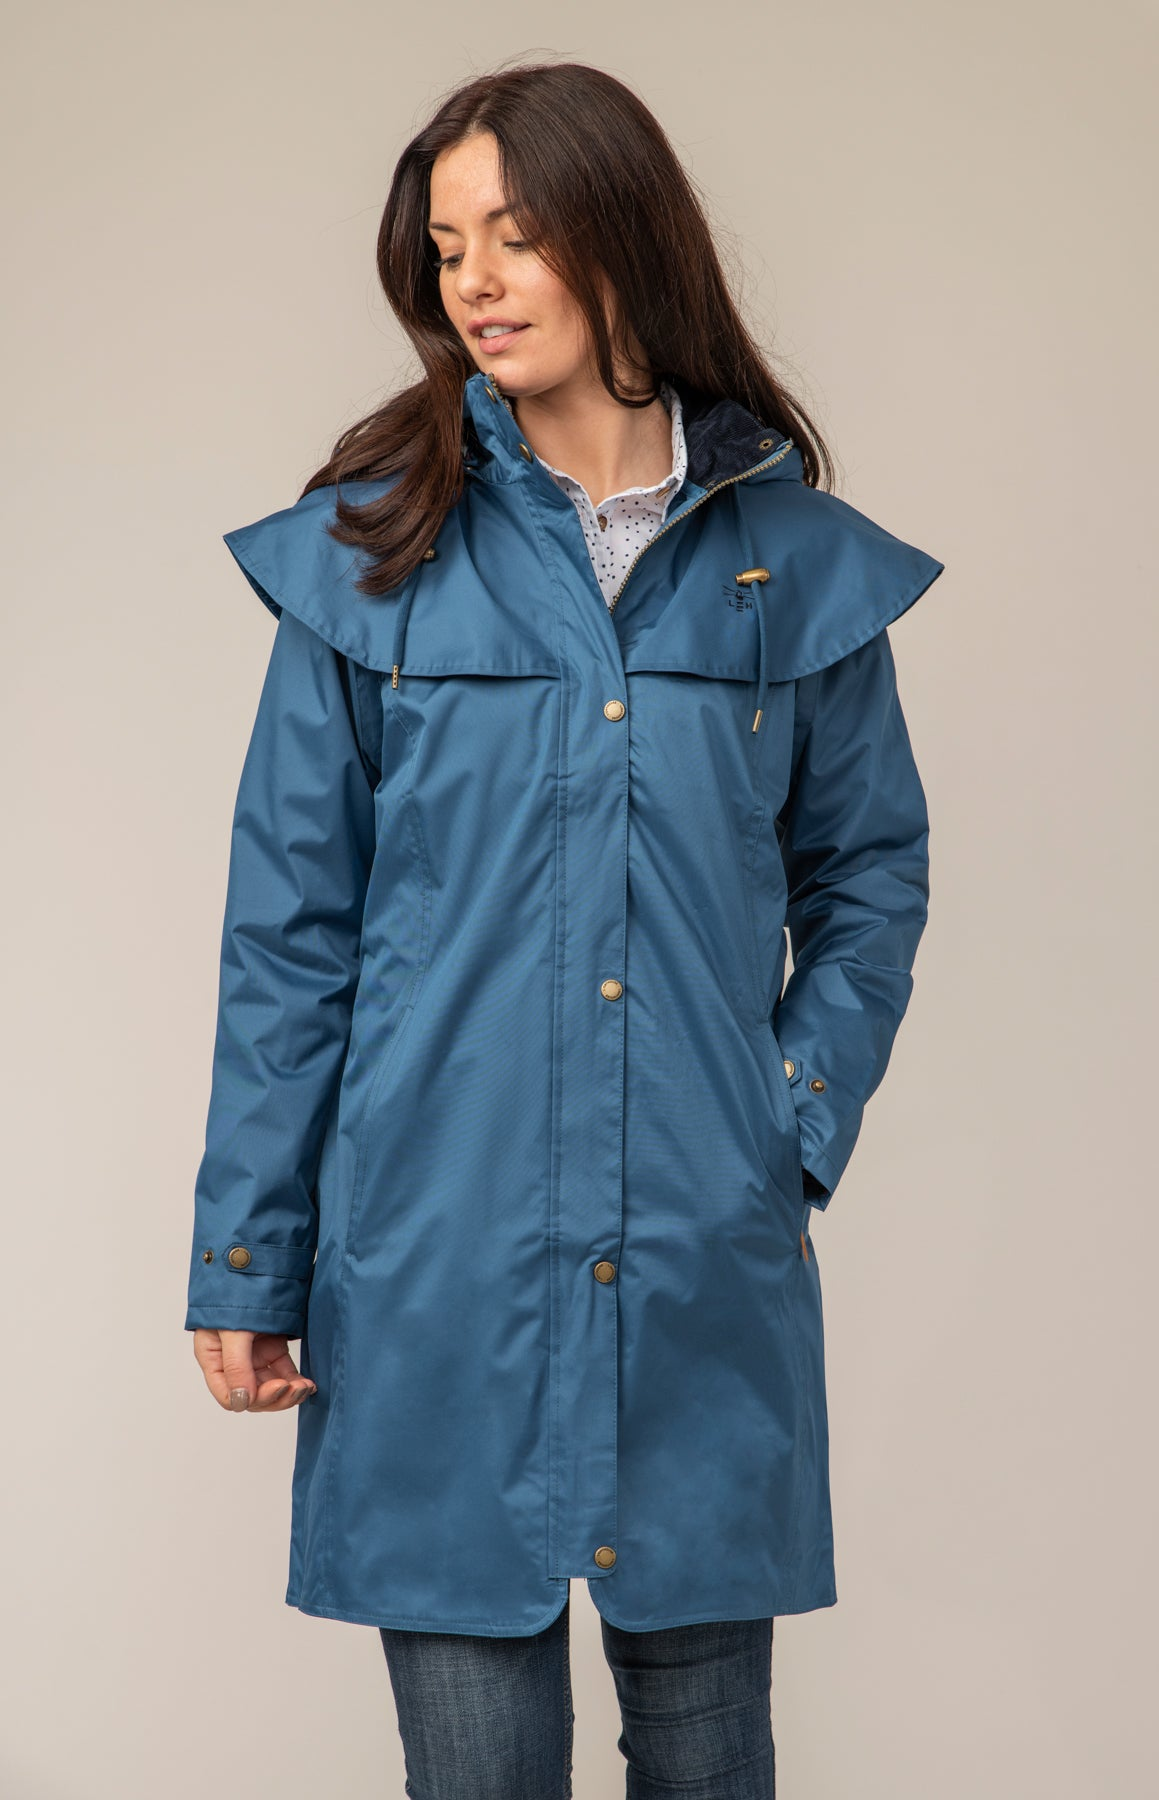 Outrider 3/4 Length Waterproof Raincoat - Deep Sea